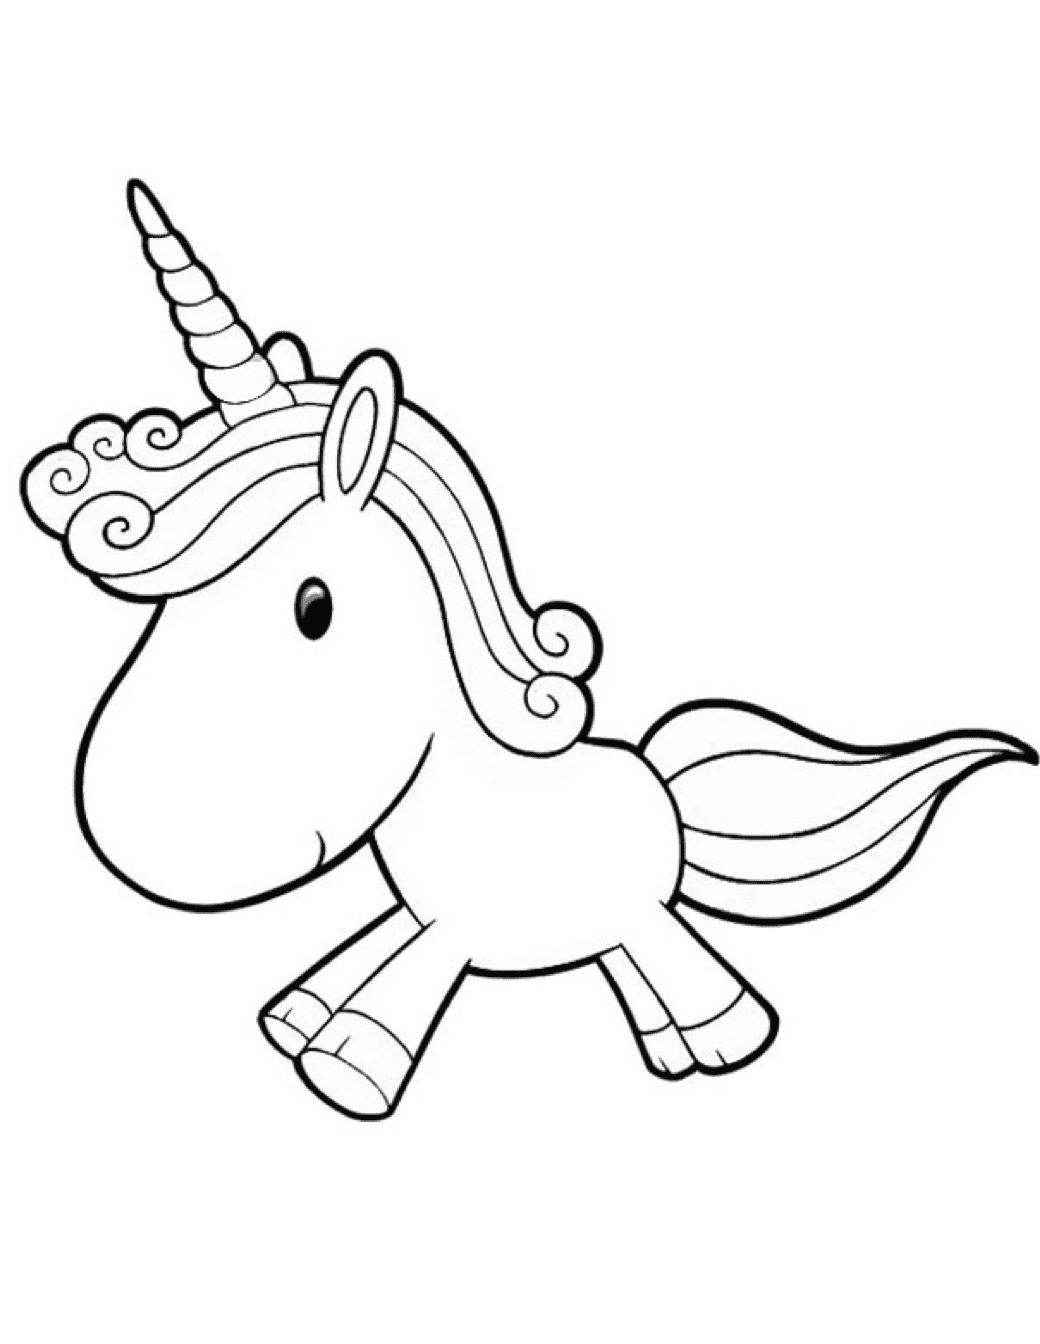 Unicorn For Coloring Narco Penantly Co